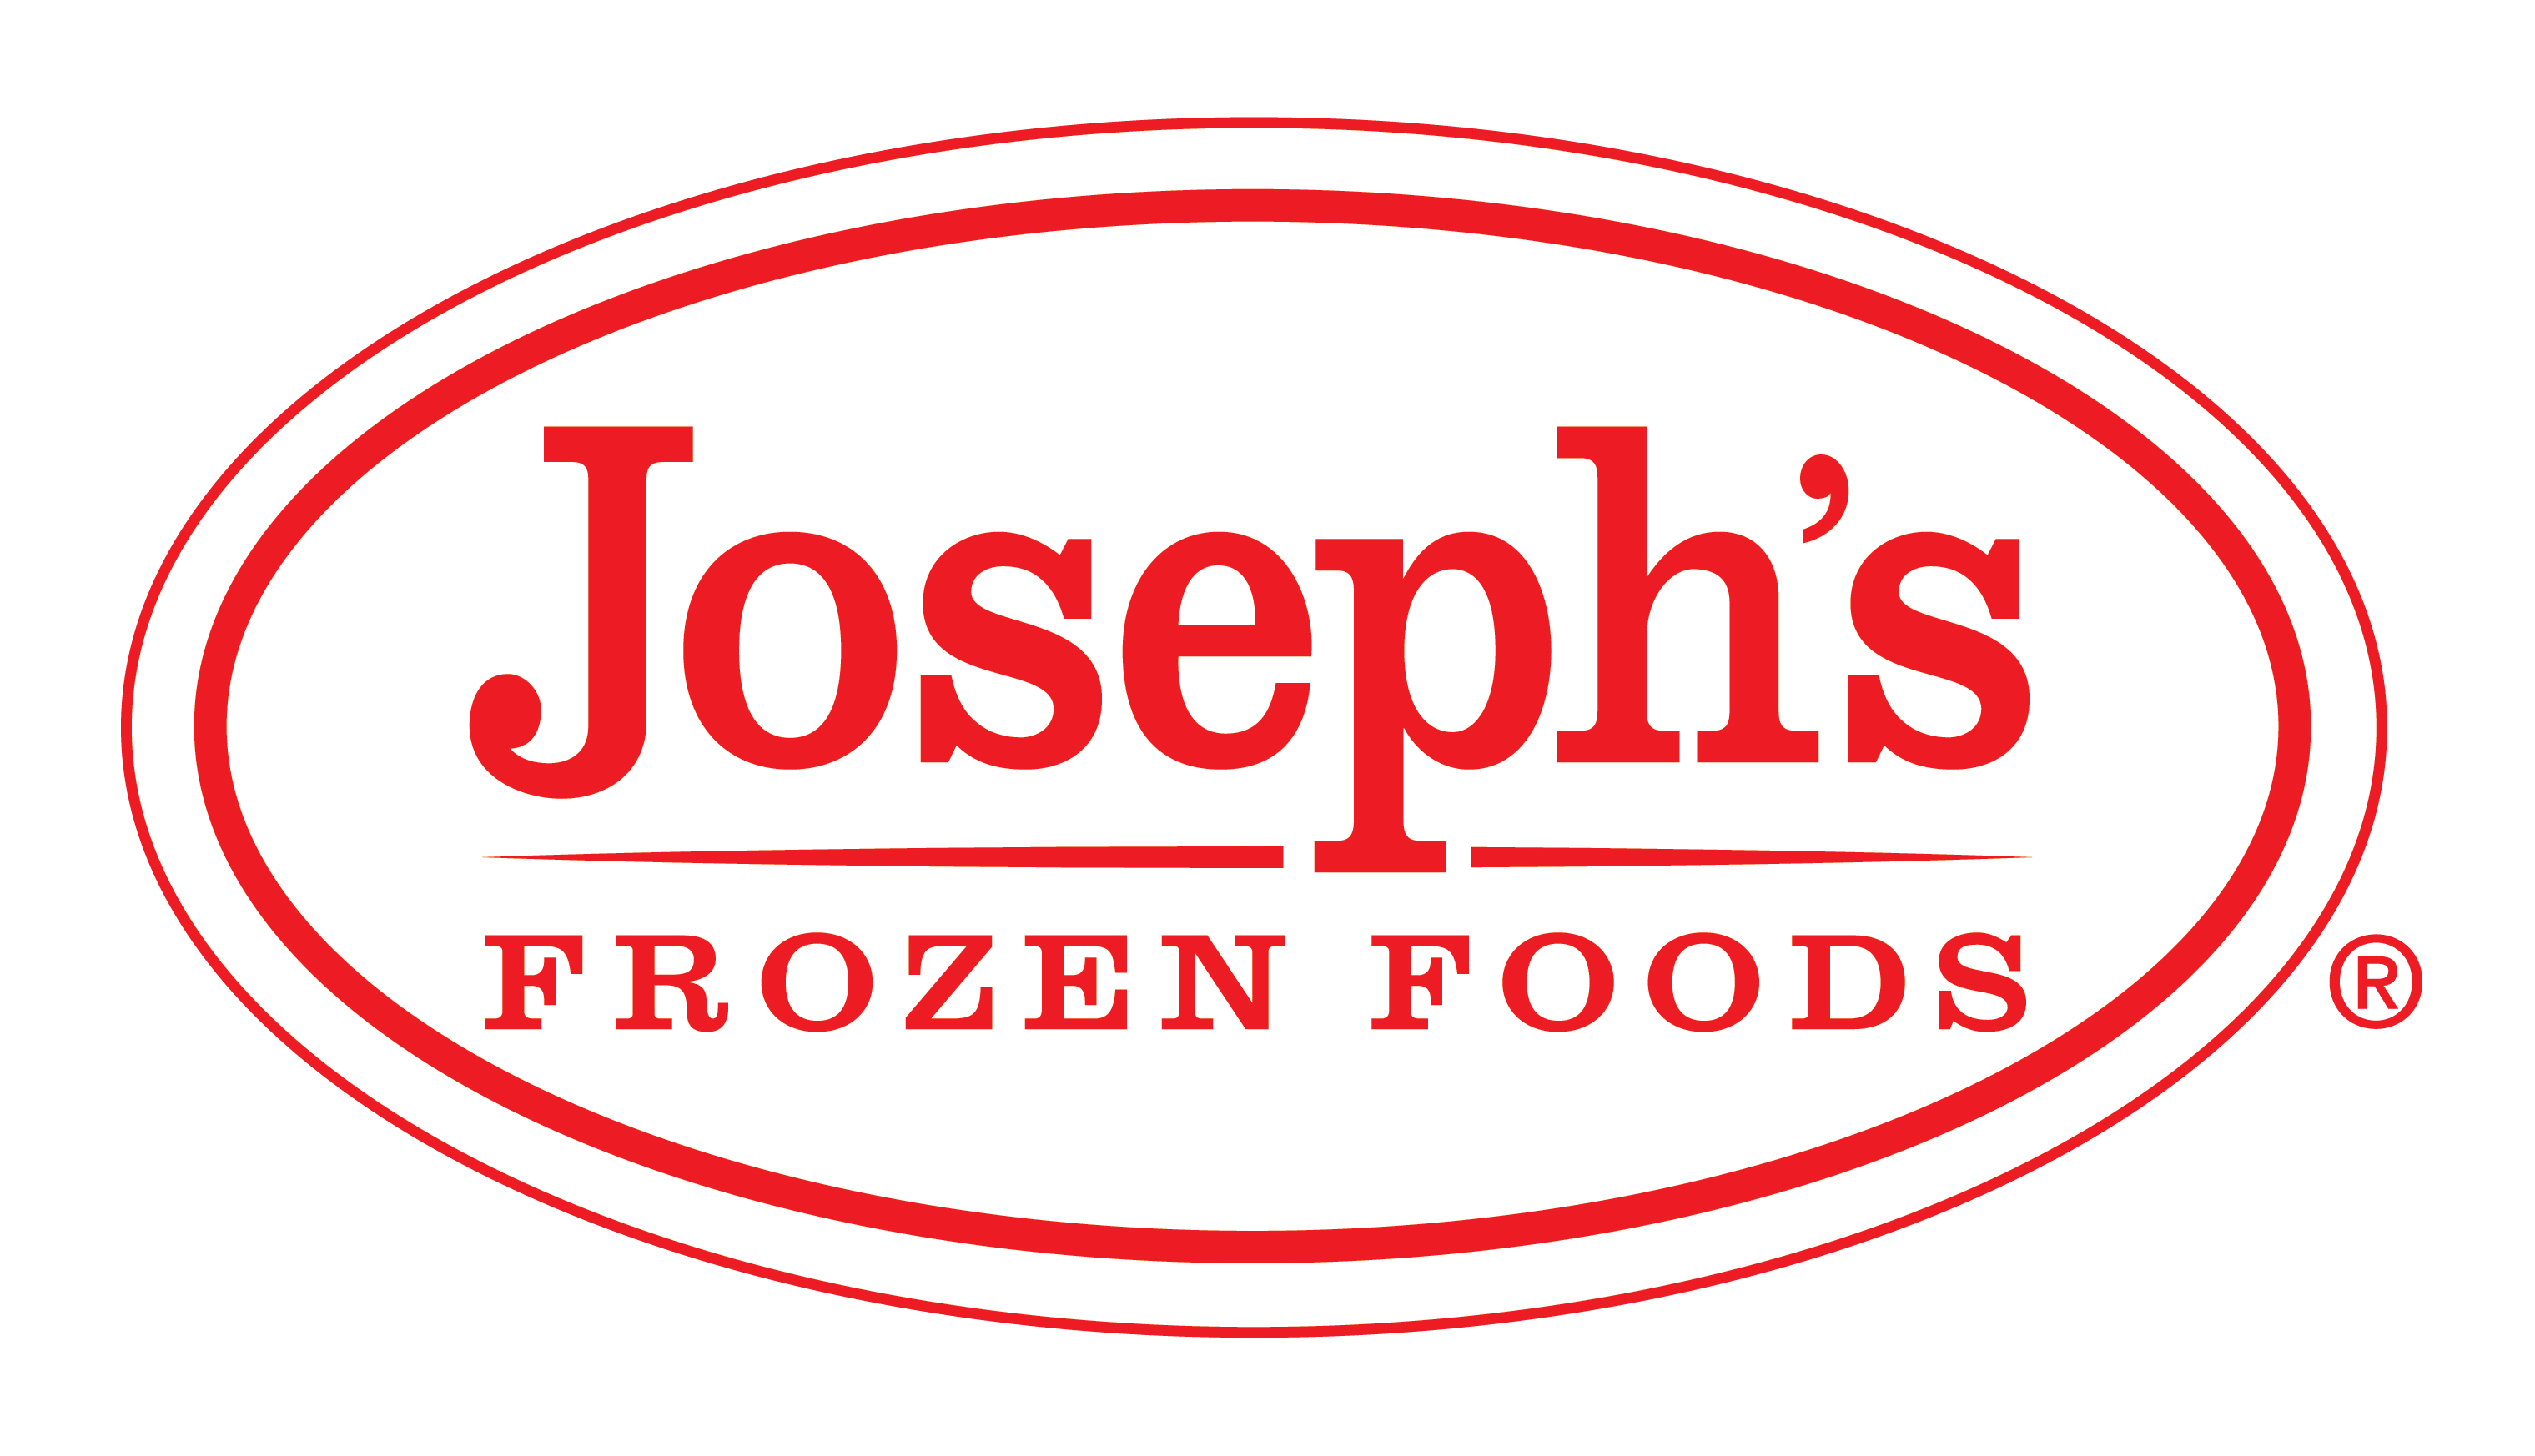 Brynwood Partners VII L.P. to Sell Joseph's Frozen Foods to LaSalle Capital, October 23 2019